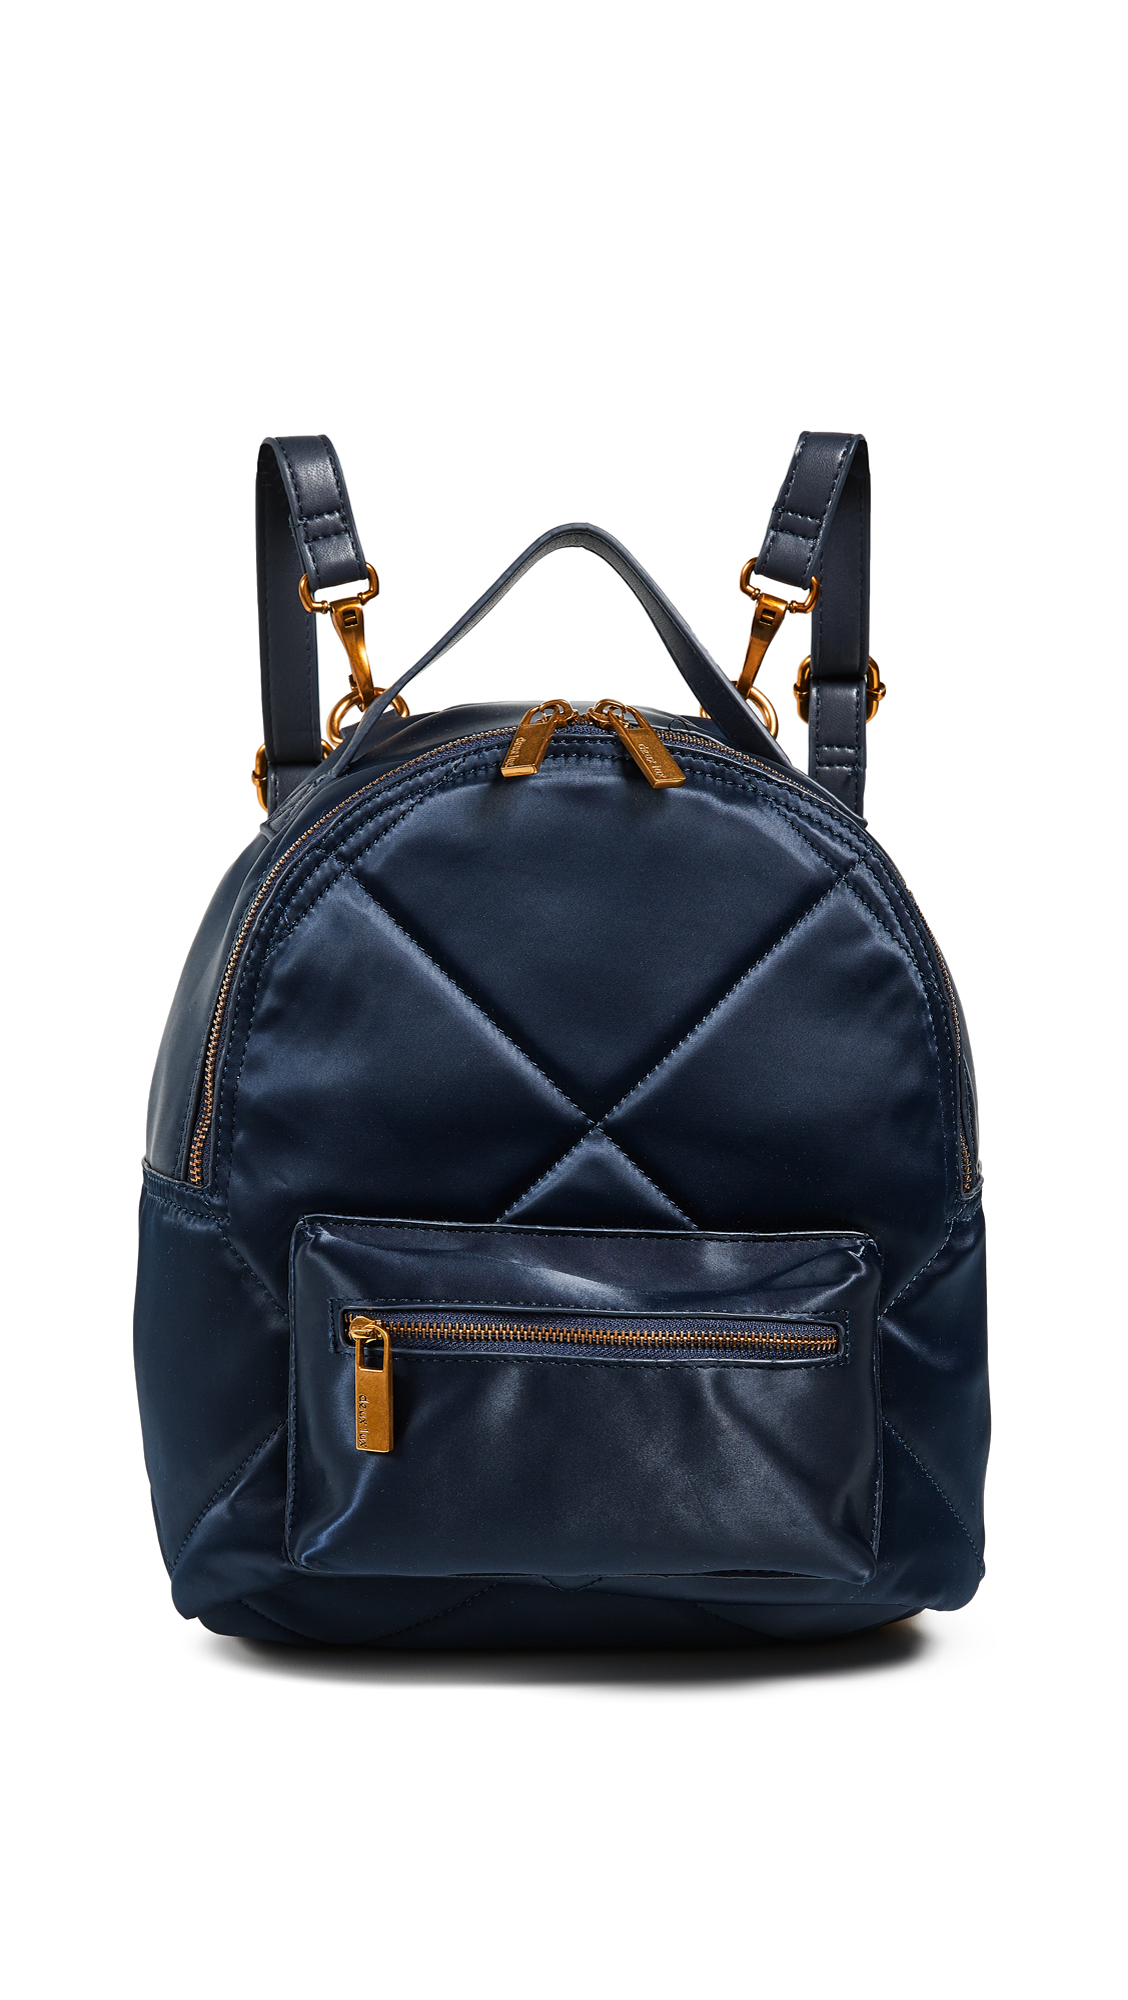 DEUX LUX Fiona Quilted Backpack in Midnight